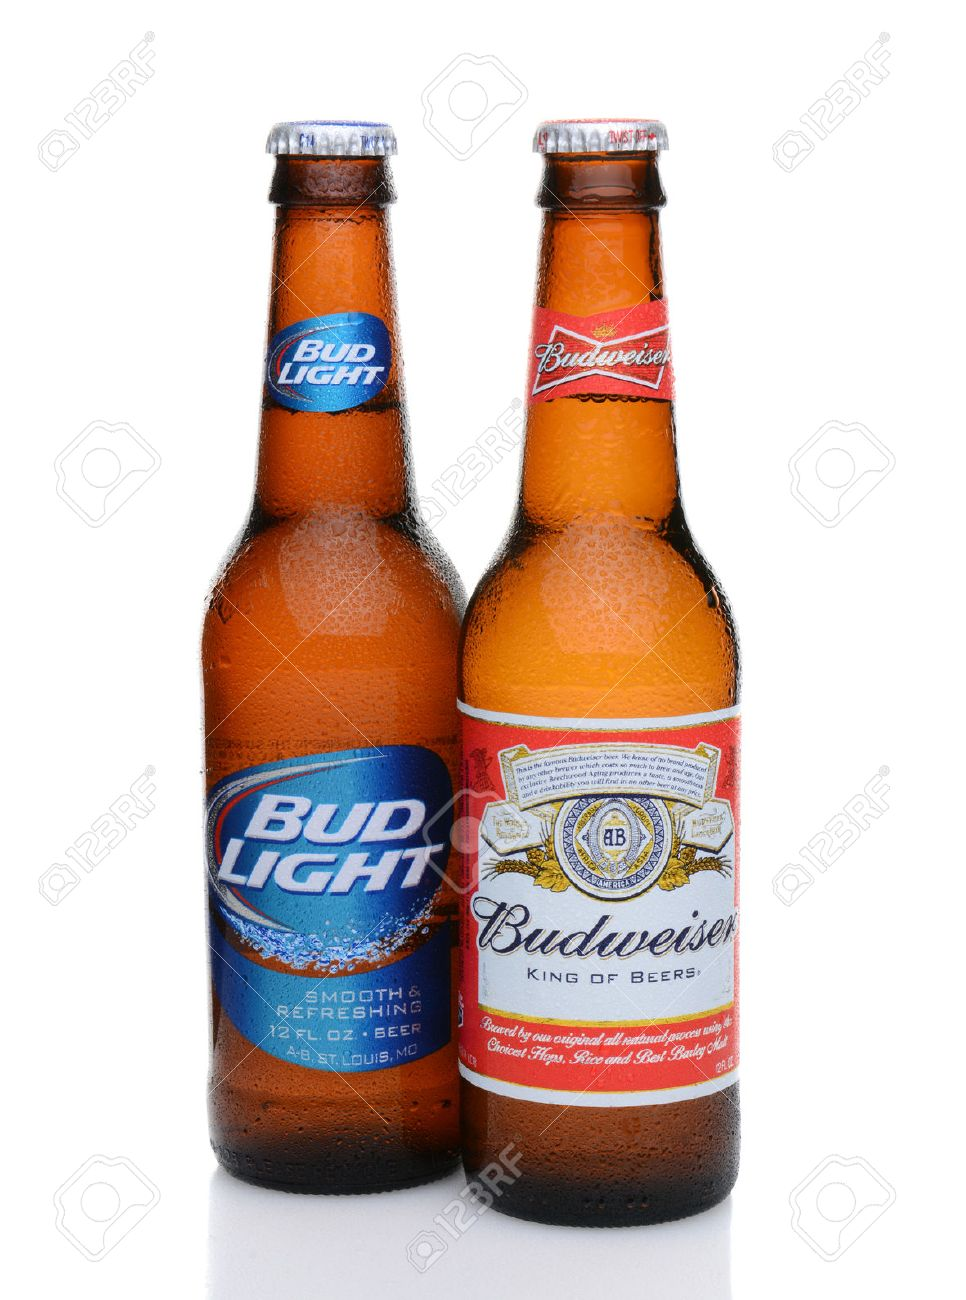 Beer Bud and Budweiser are the same